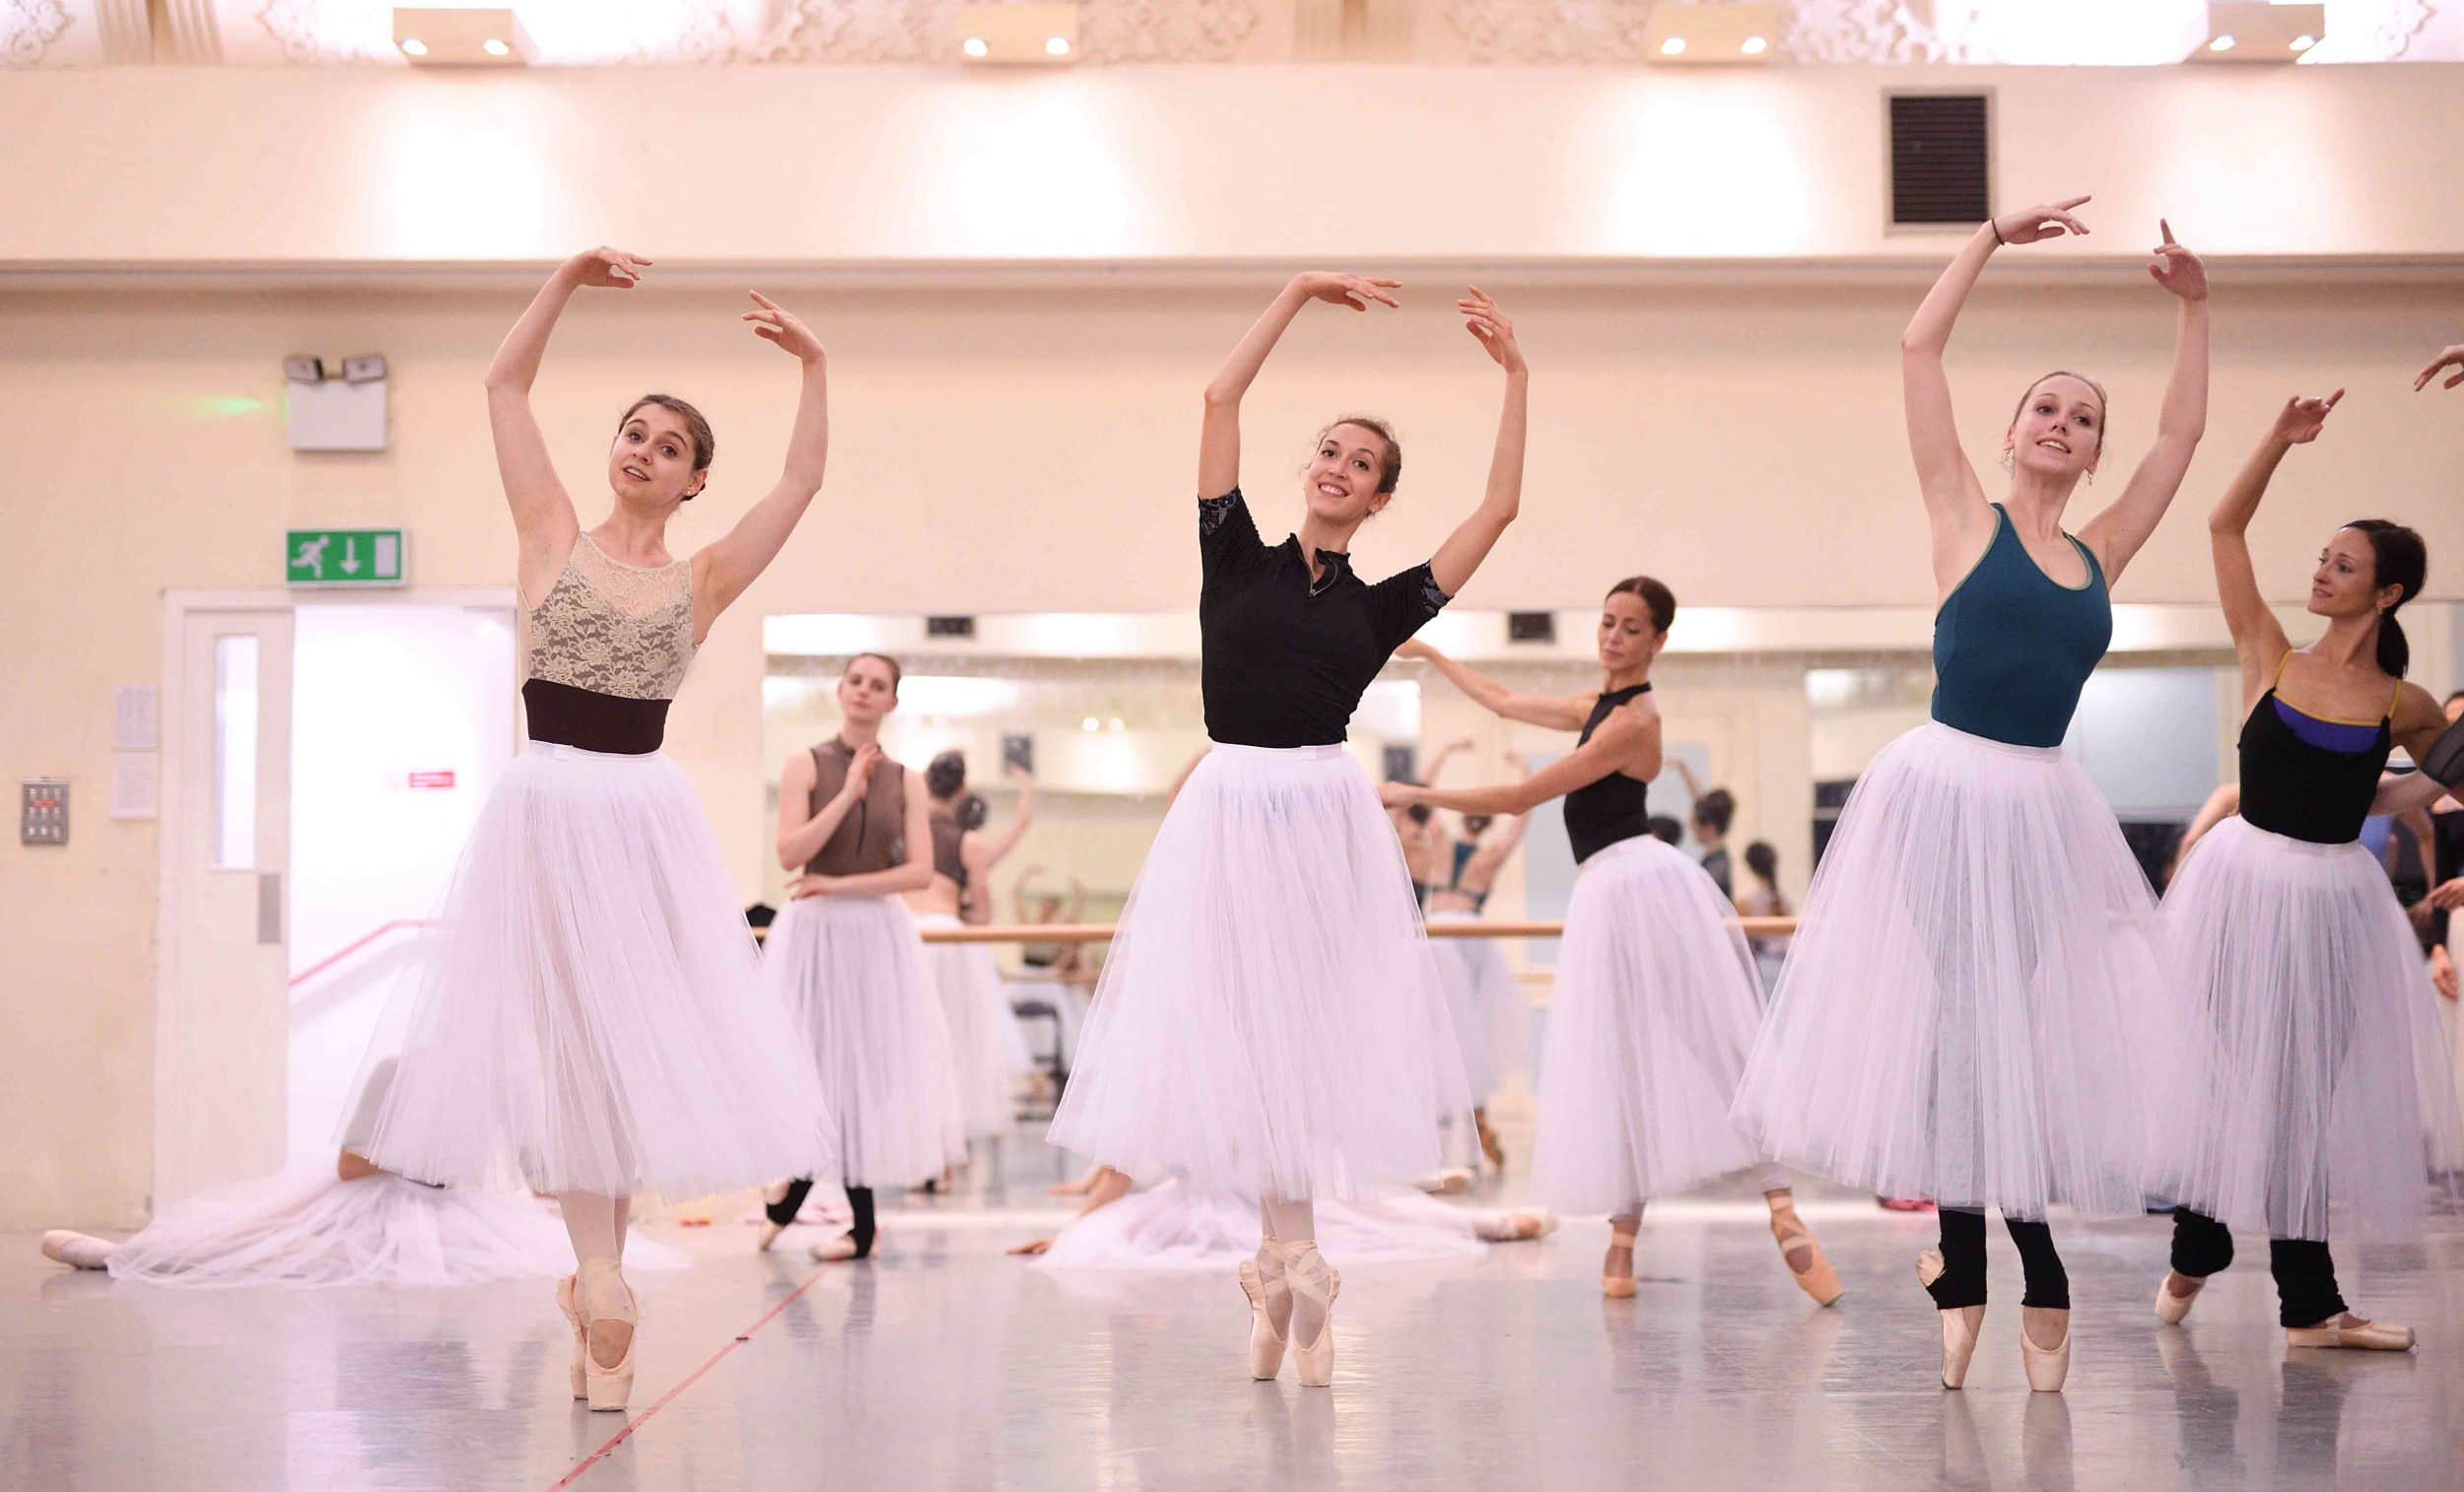 English-National-Ballet-dancers-rehearsing-La-Sylphide-©-Laurent-Liotardo